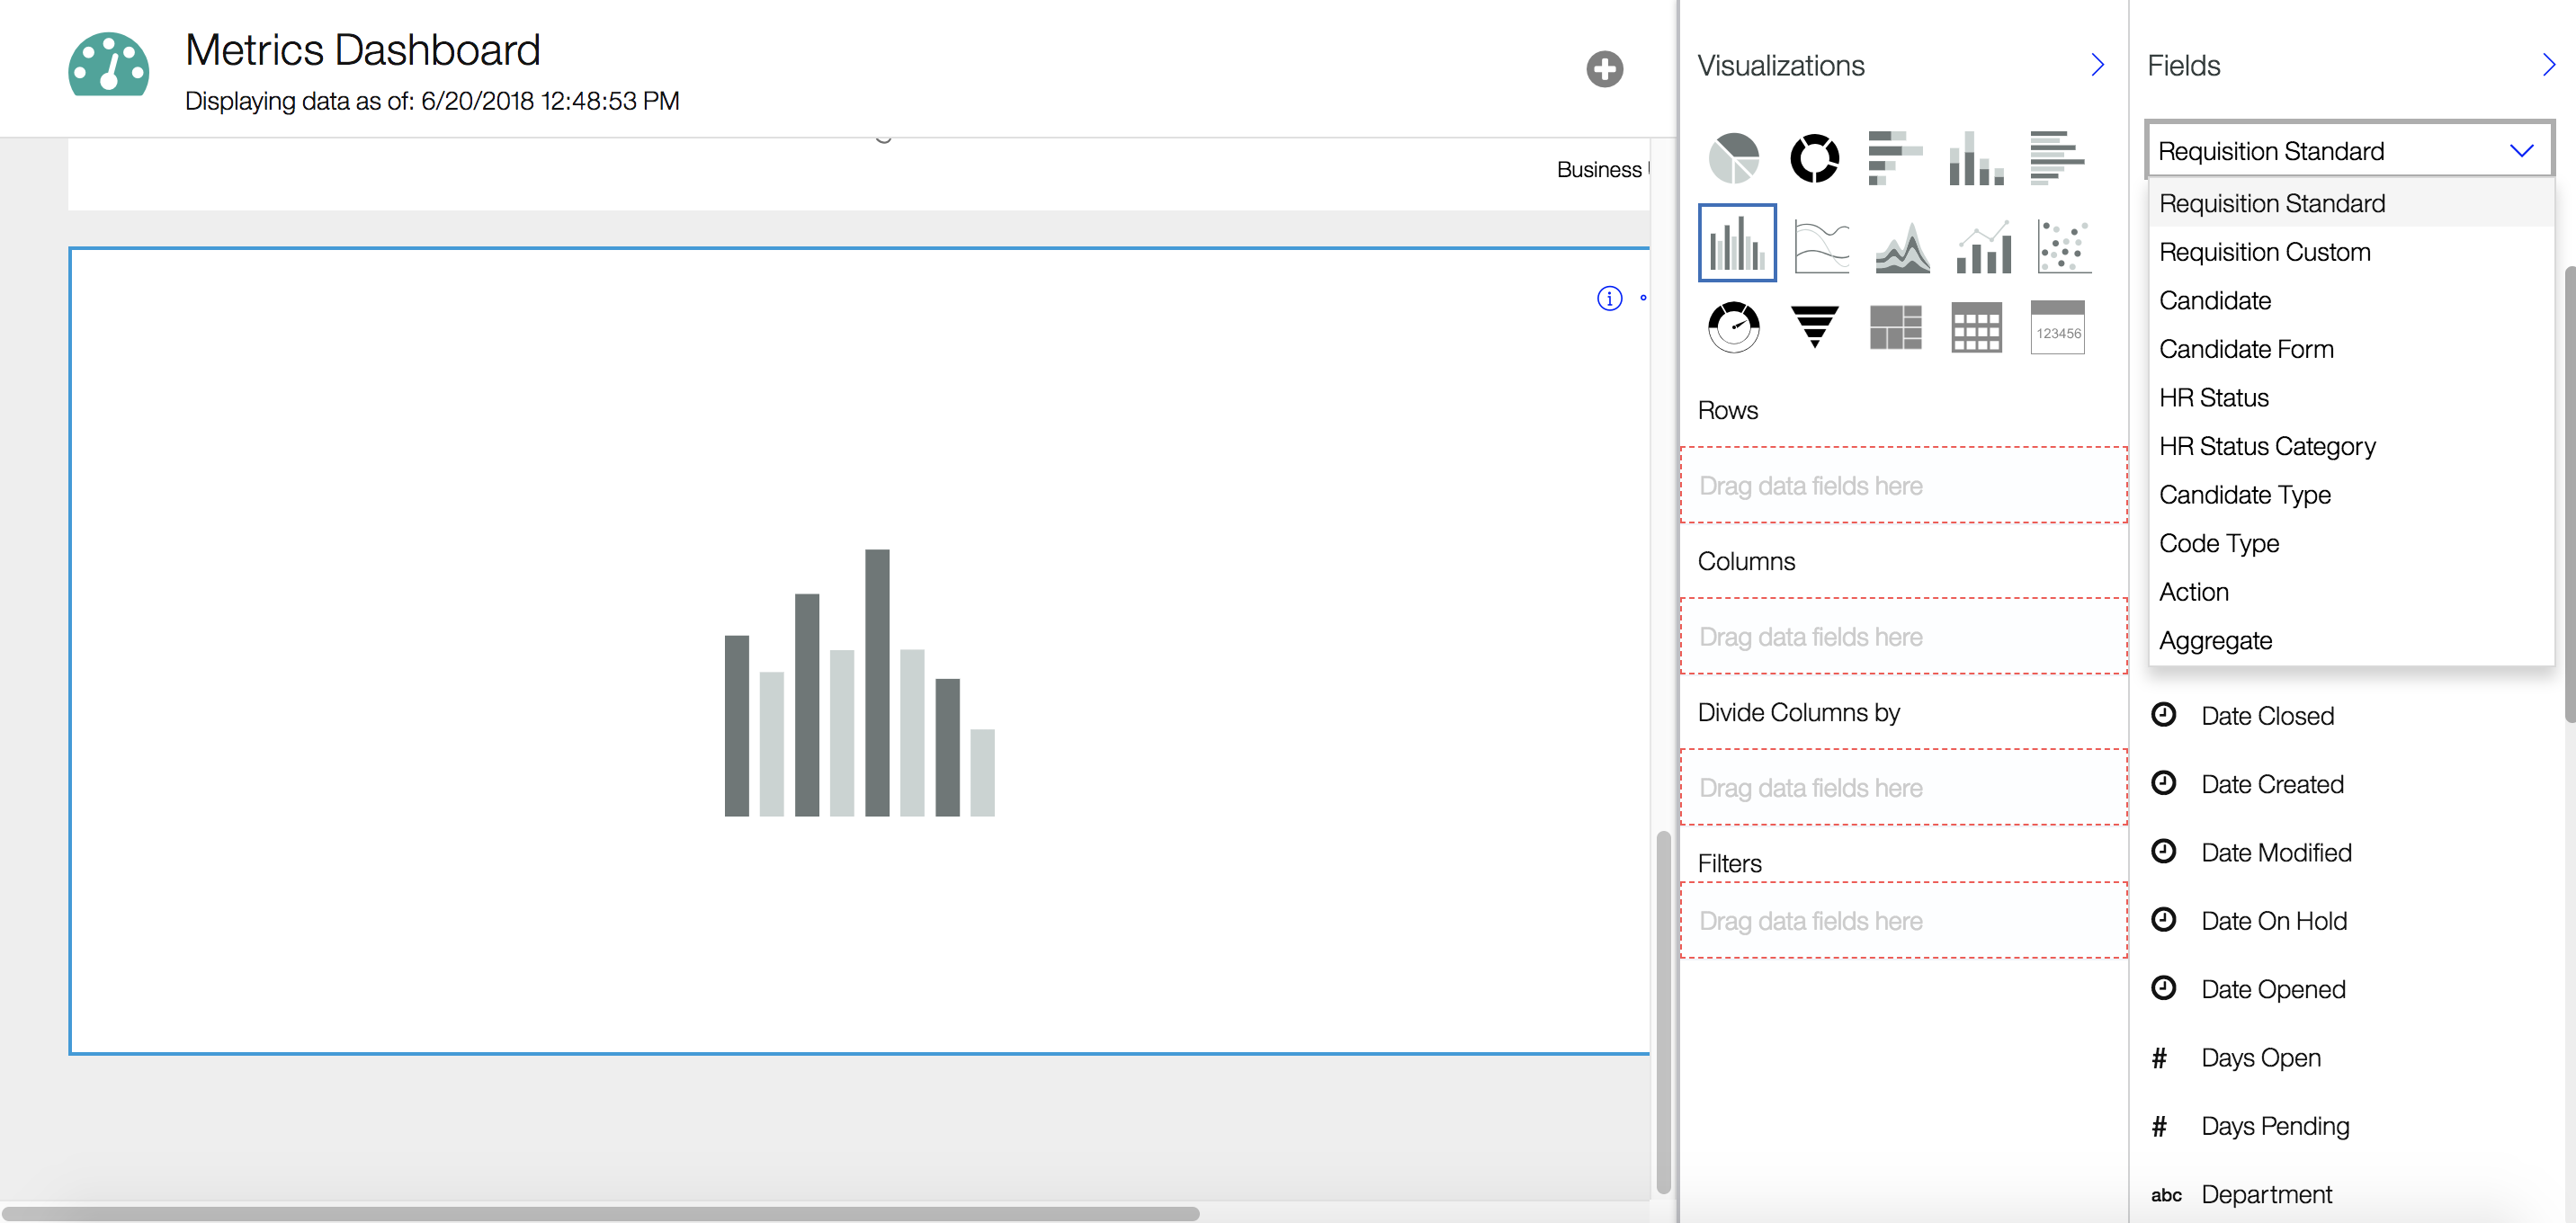 IBM Kenexa Talent Acquisition Suite Demo - BrassRing Metrics Dashboard Customization